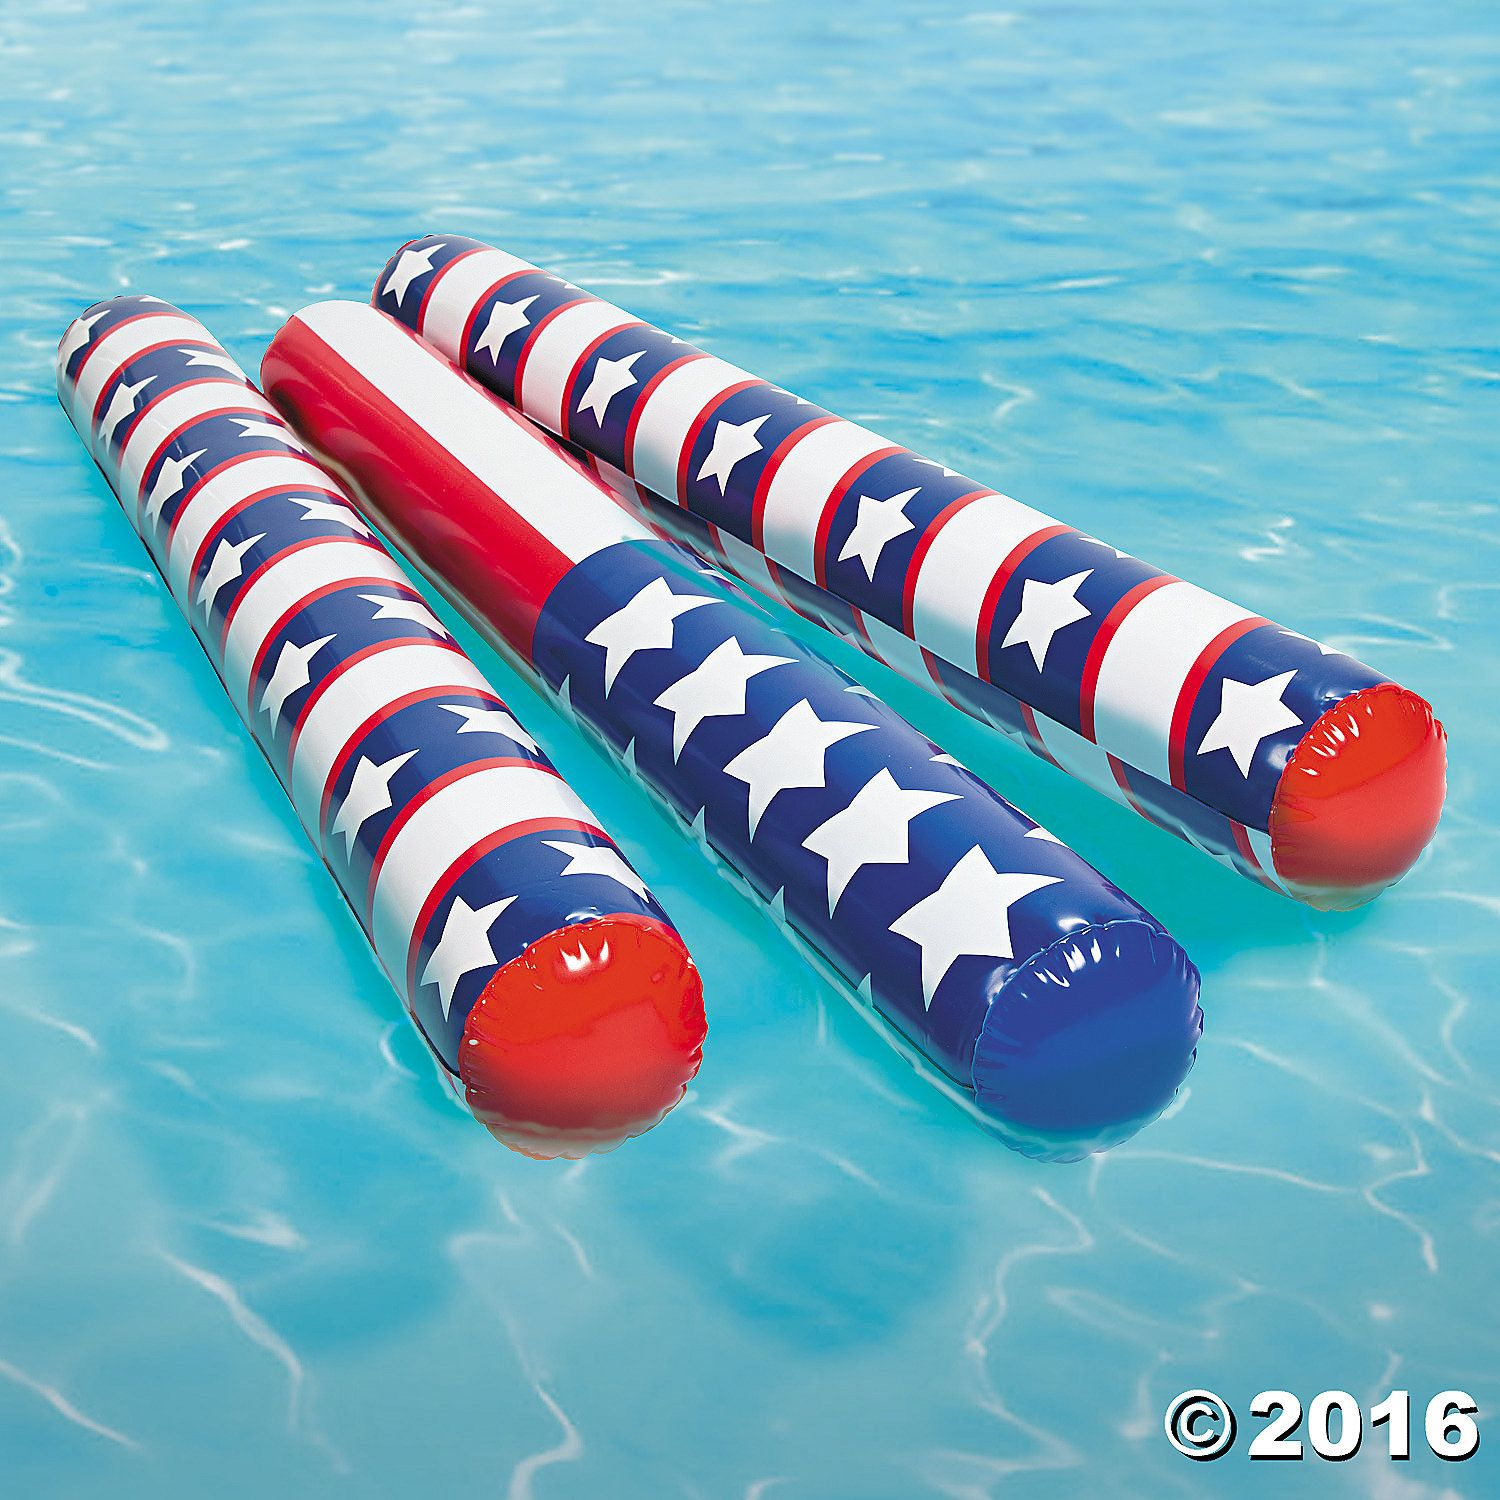 Add some red white and blue to your Independence Day dip These